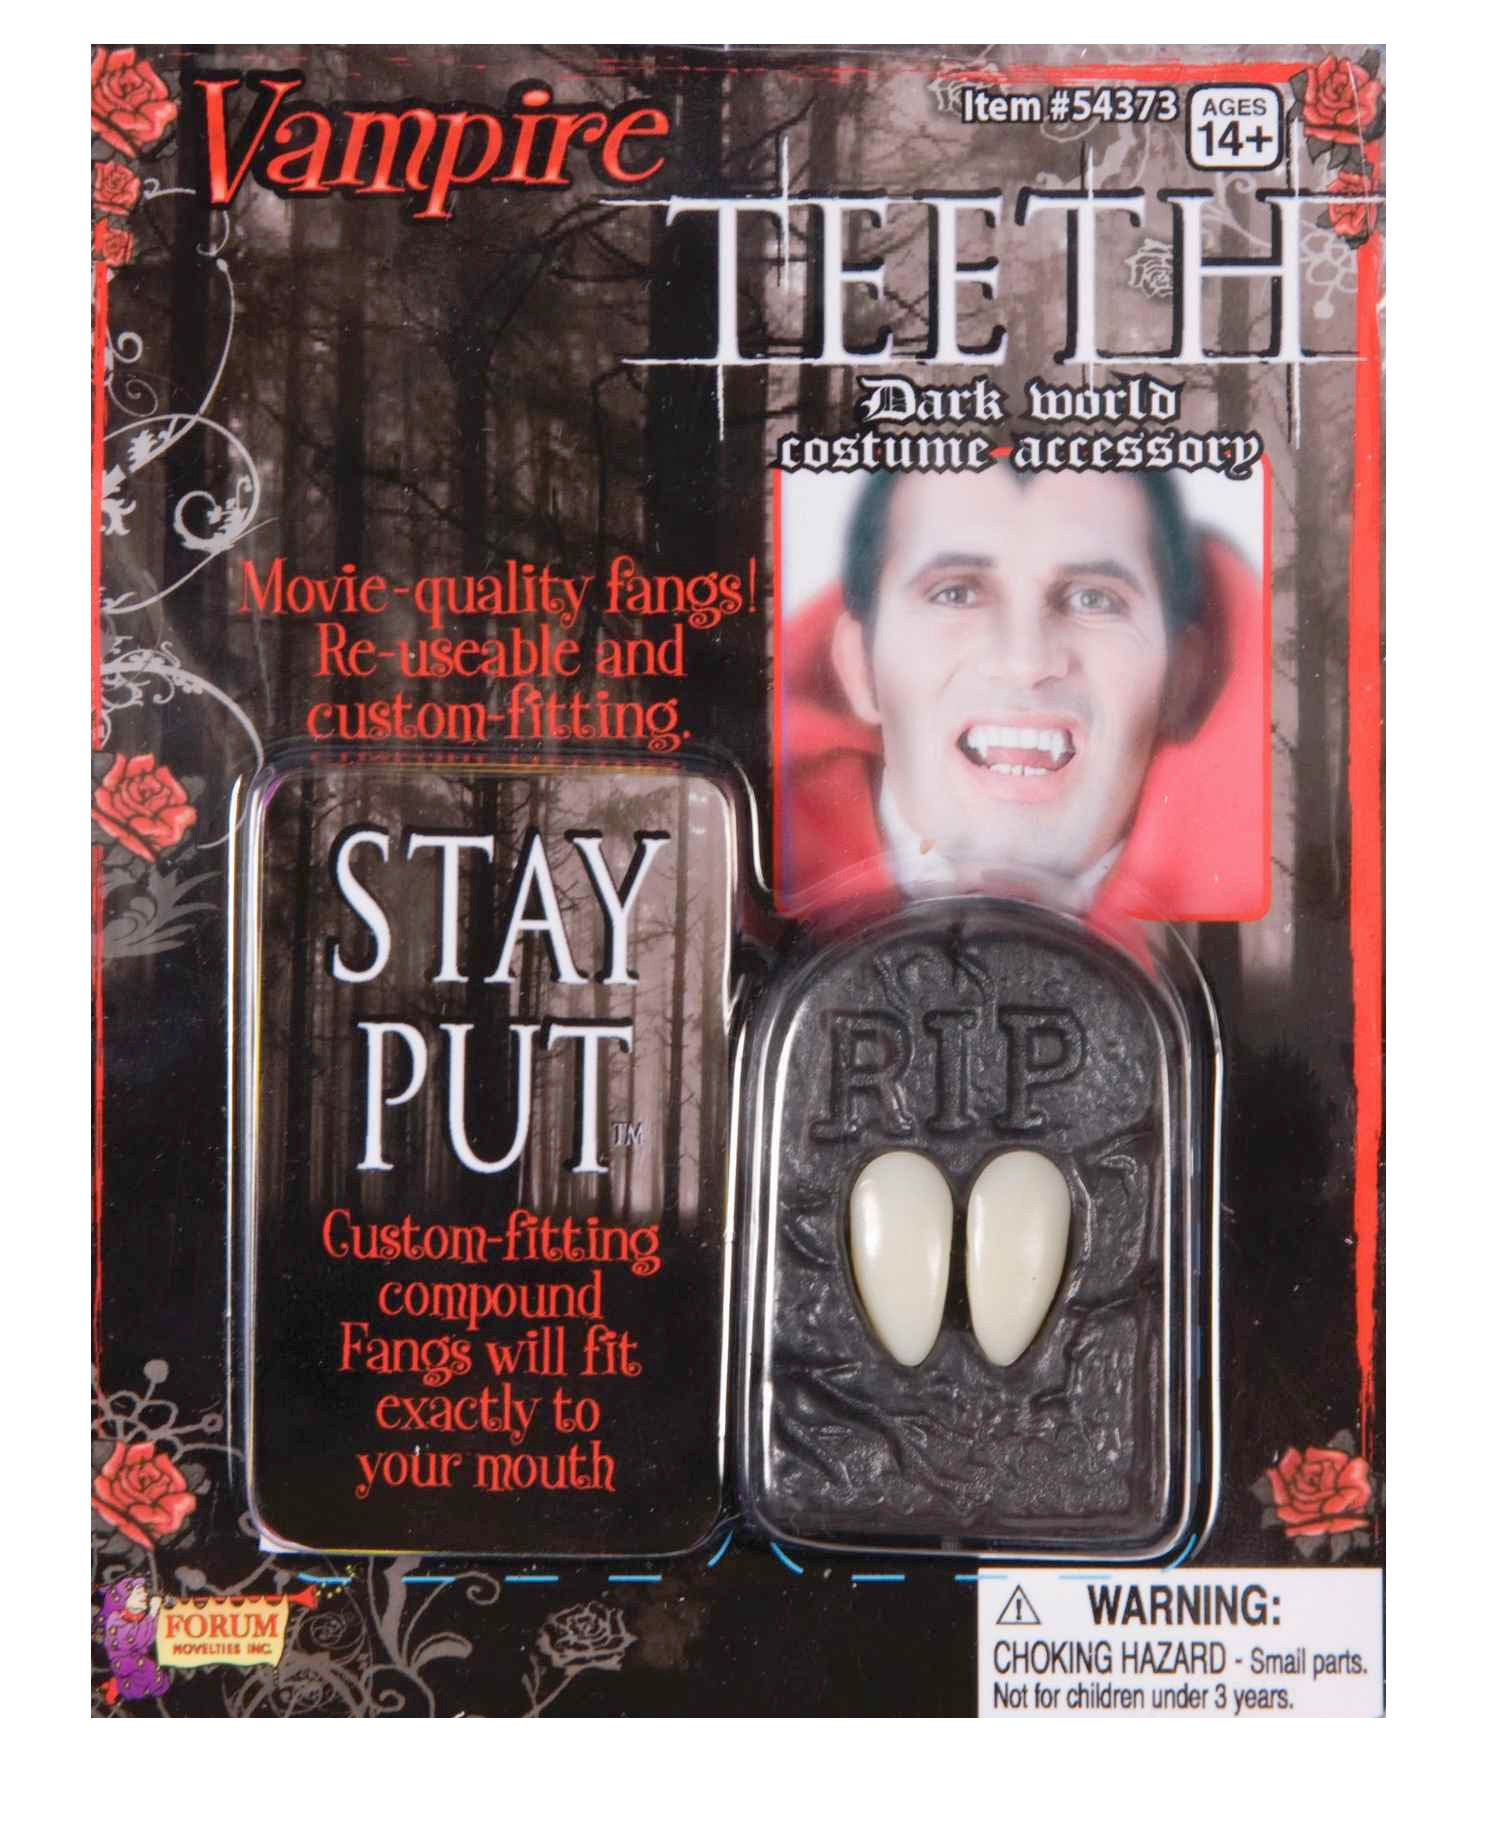 Teeth - Vampire Fangs in Coffin w/Putty